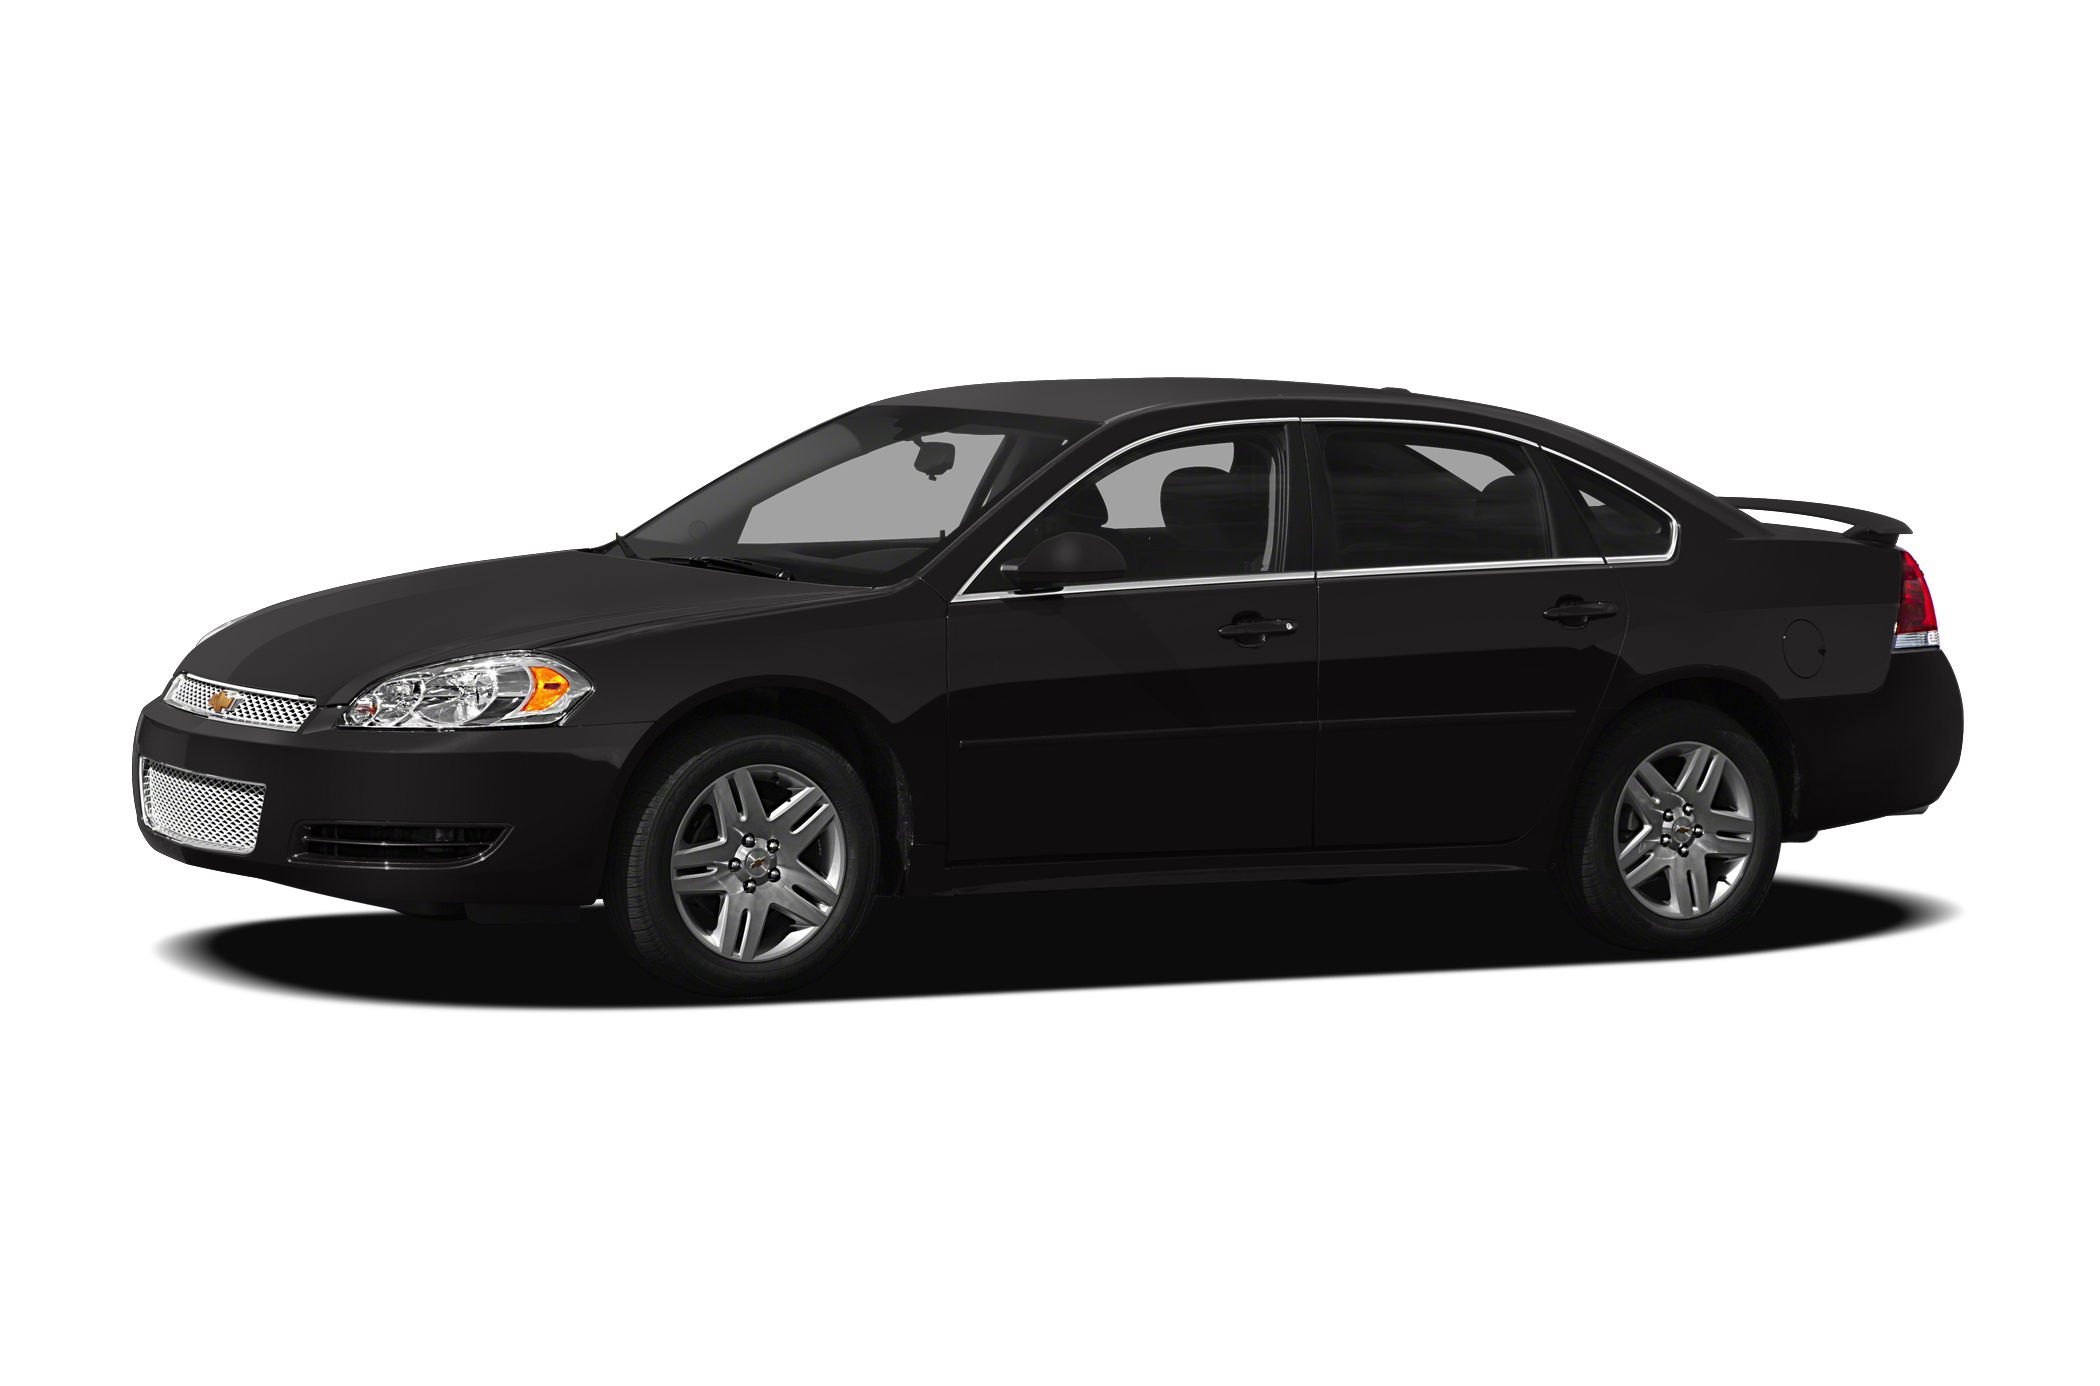 2013 Chevrolet Impala LT Sedan for sale in Lebanon for $14,800 with 48,016 miles.